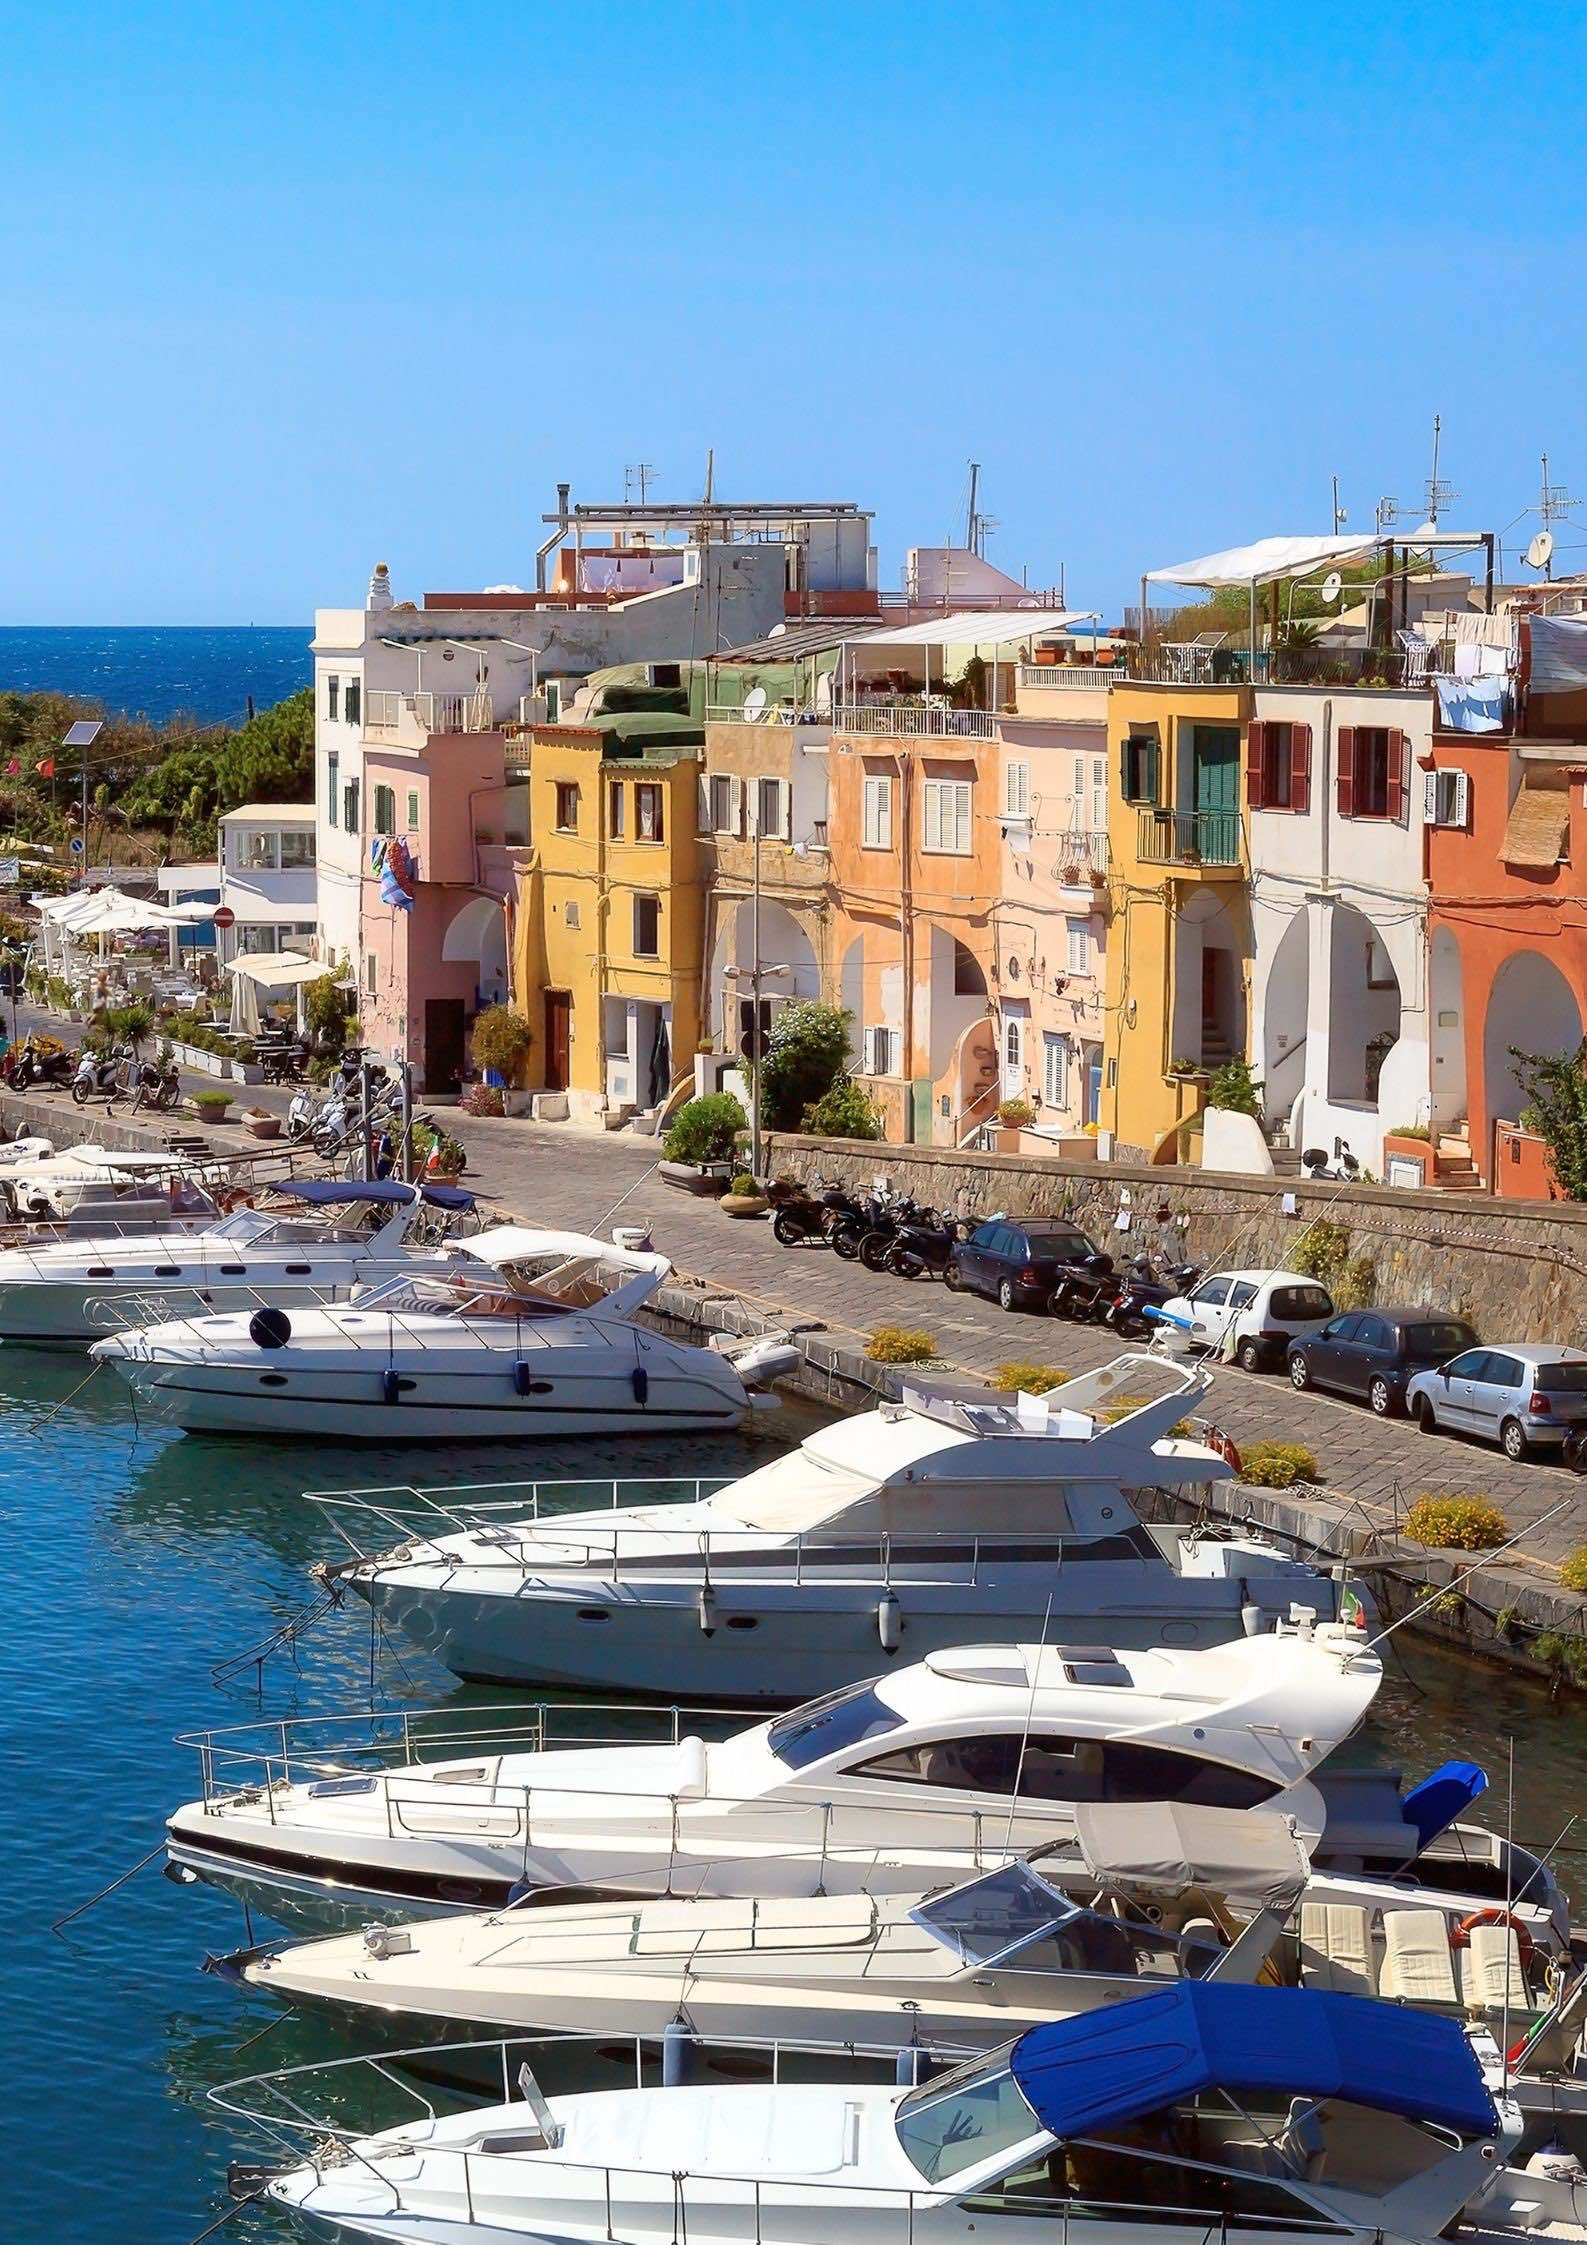 View of the colorful harbour of Chiaiolella Marina in Procida